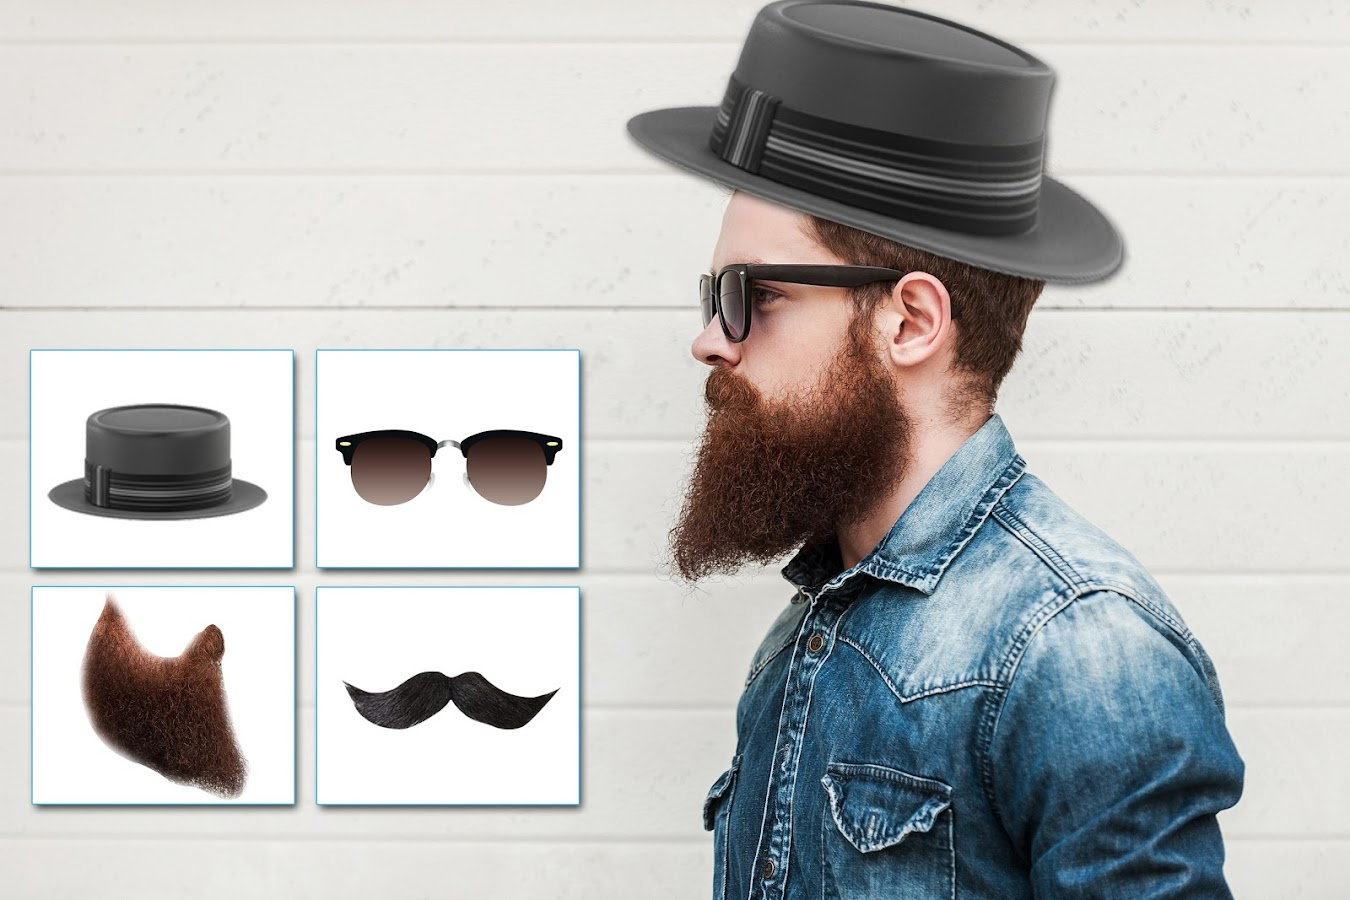 man style makeup - hair & beard photo editor - android apps on